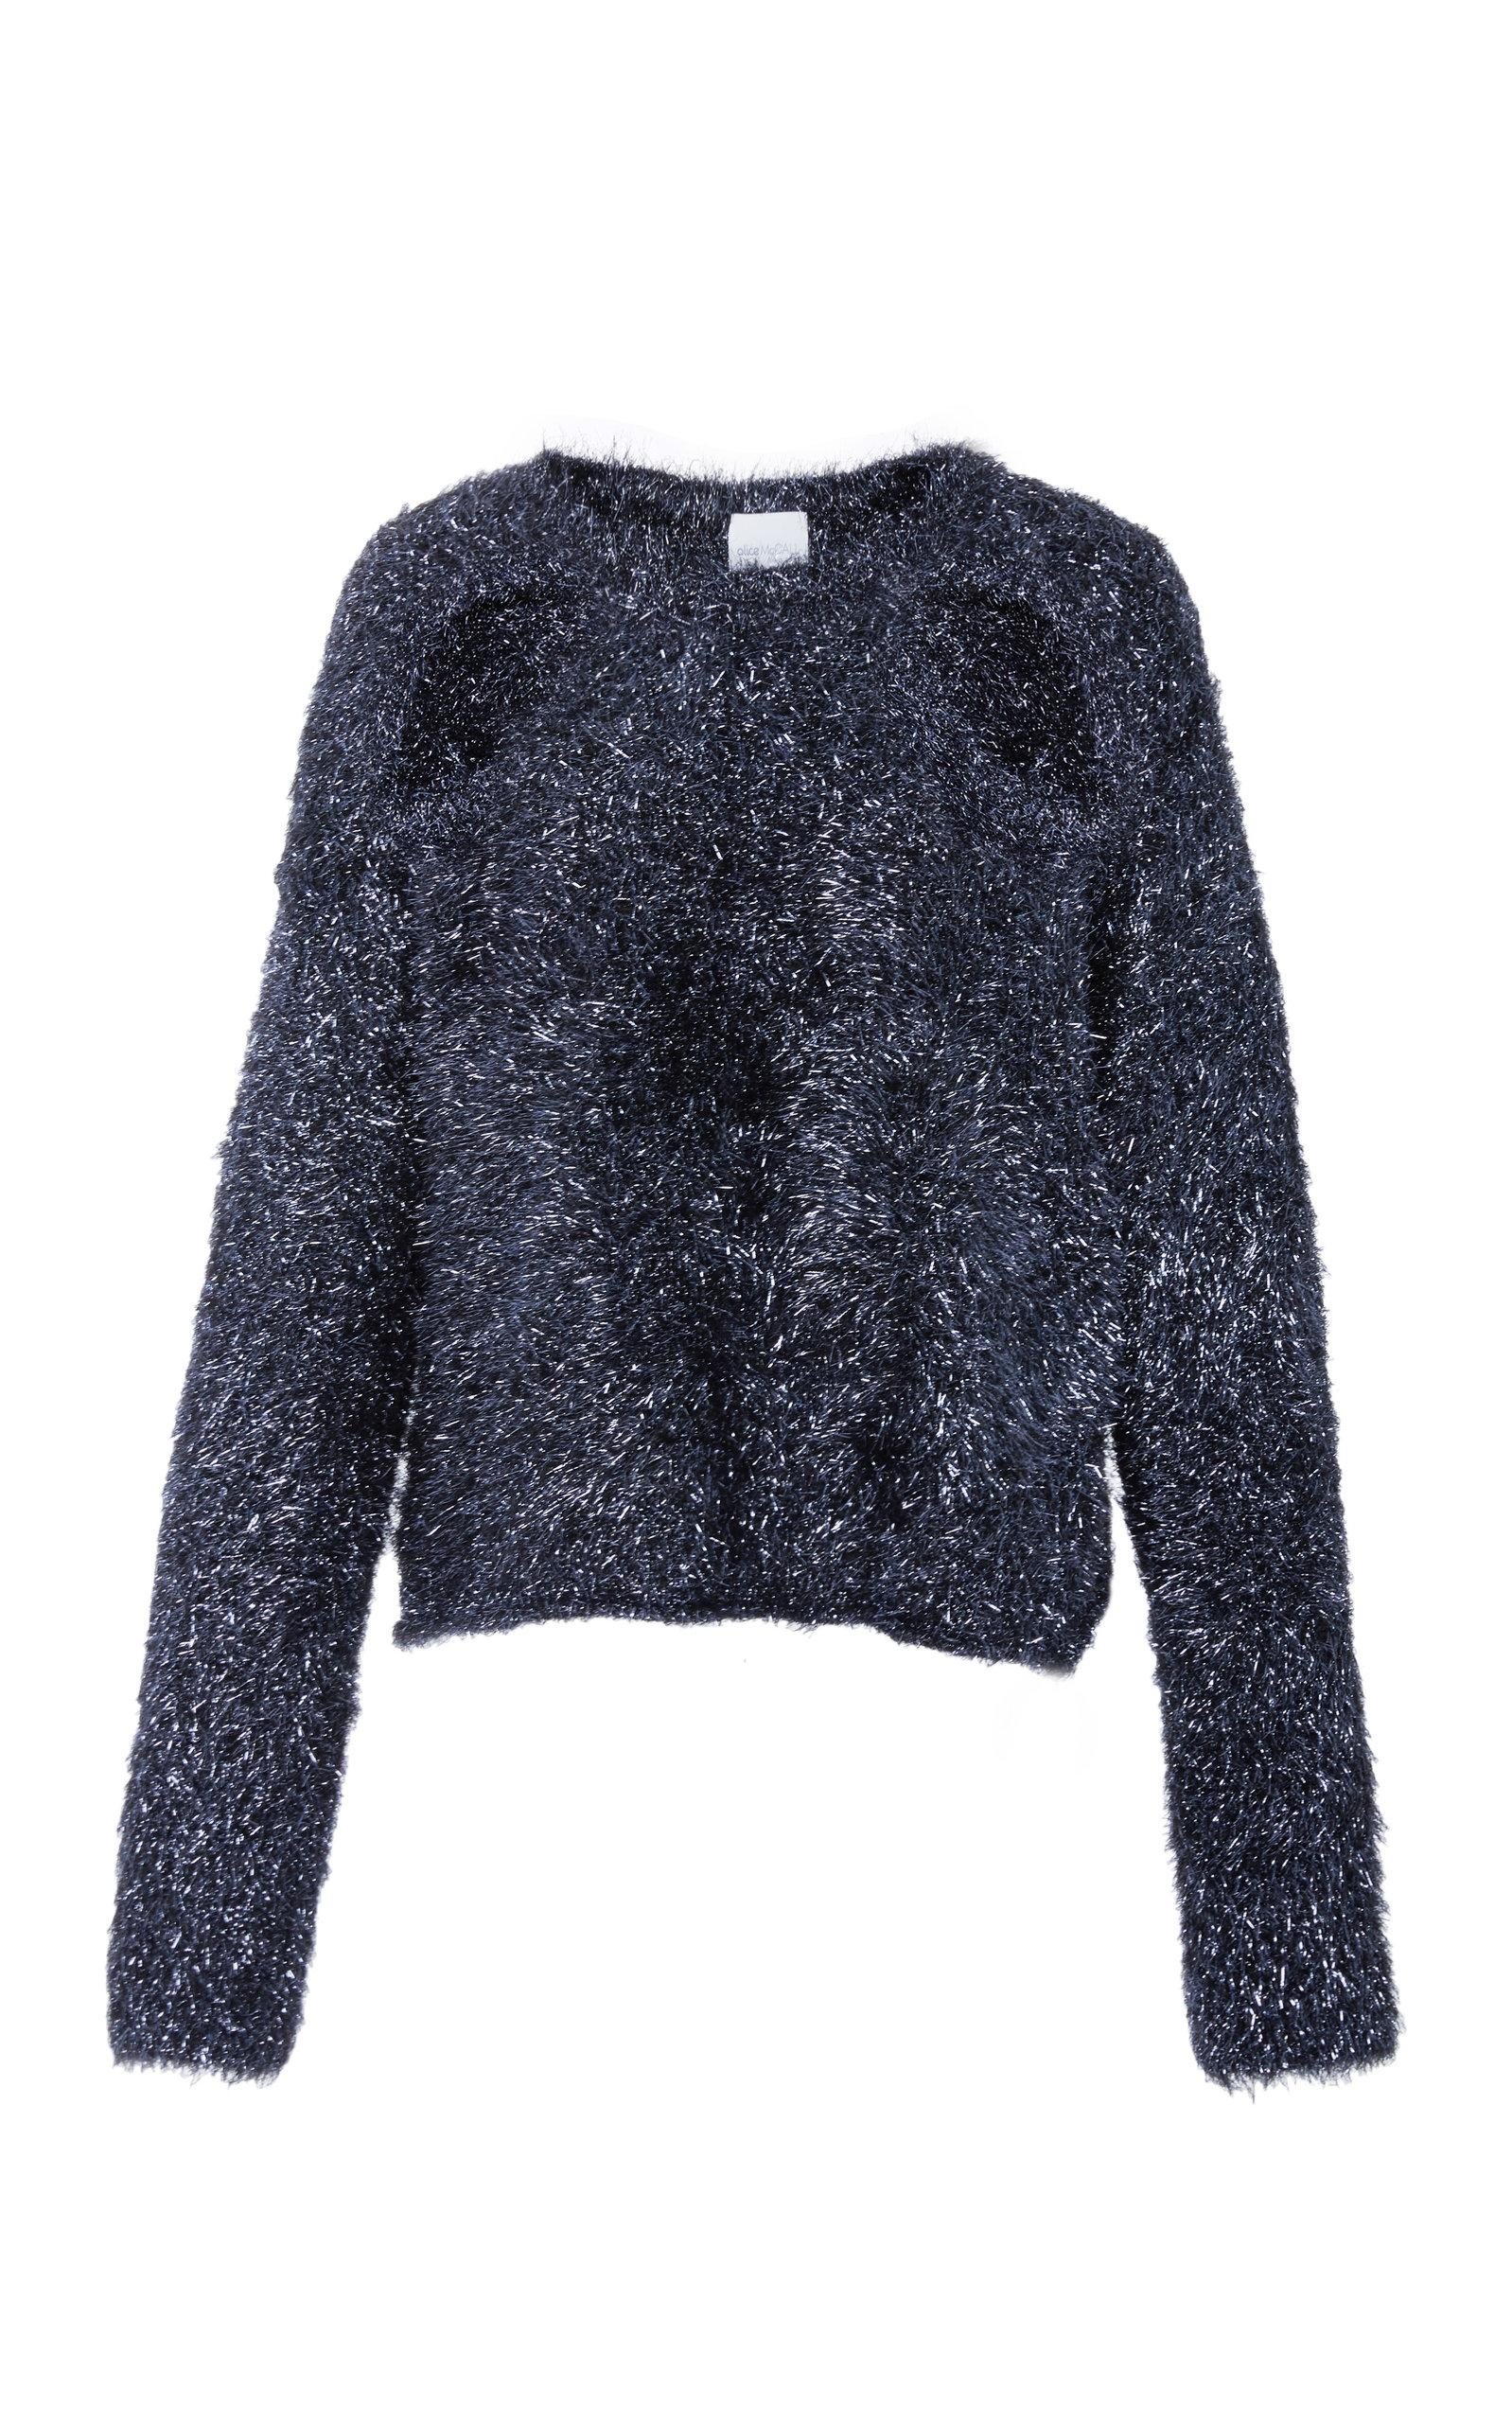 Alice Mccall On Hold Jumper In Black